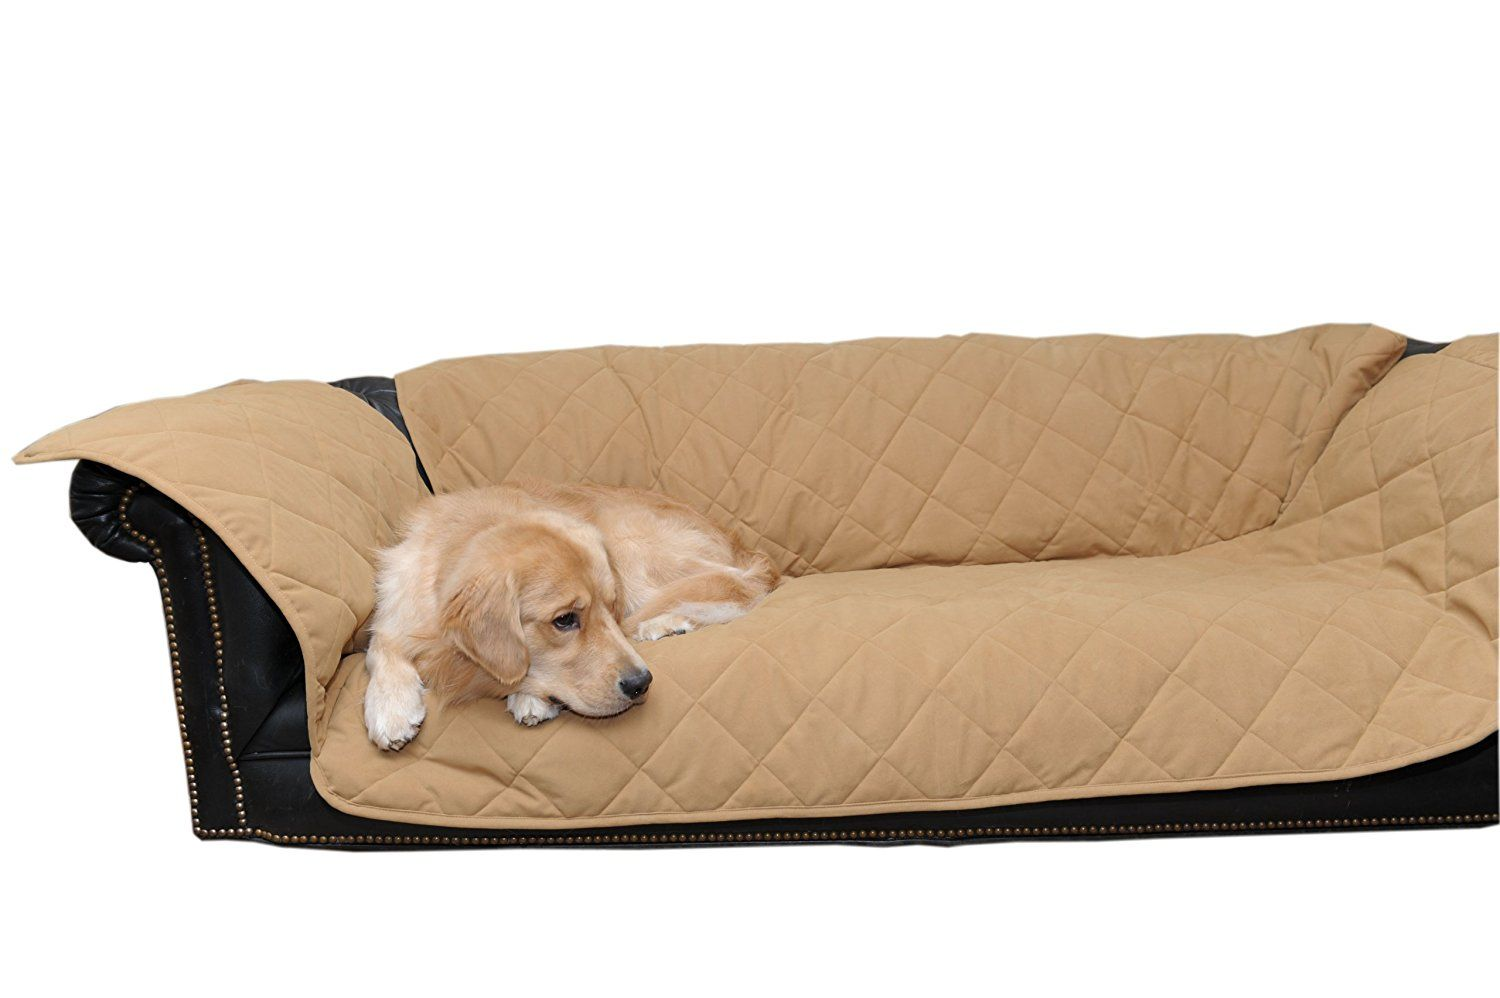 CPC Diamond Quilted Couch Protector For Dogs And Cats, 72 X 27 X 34-